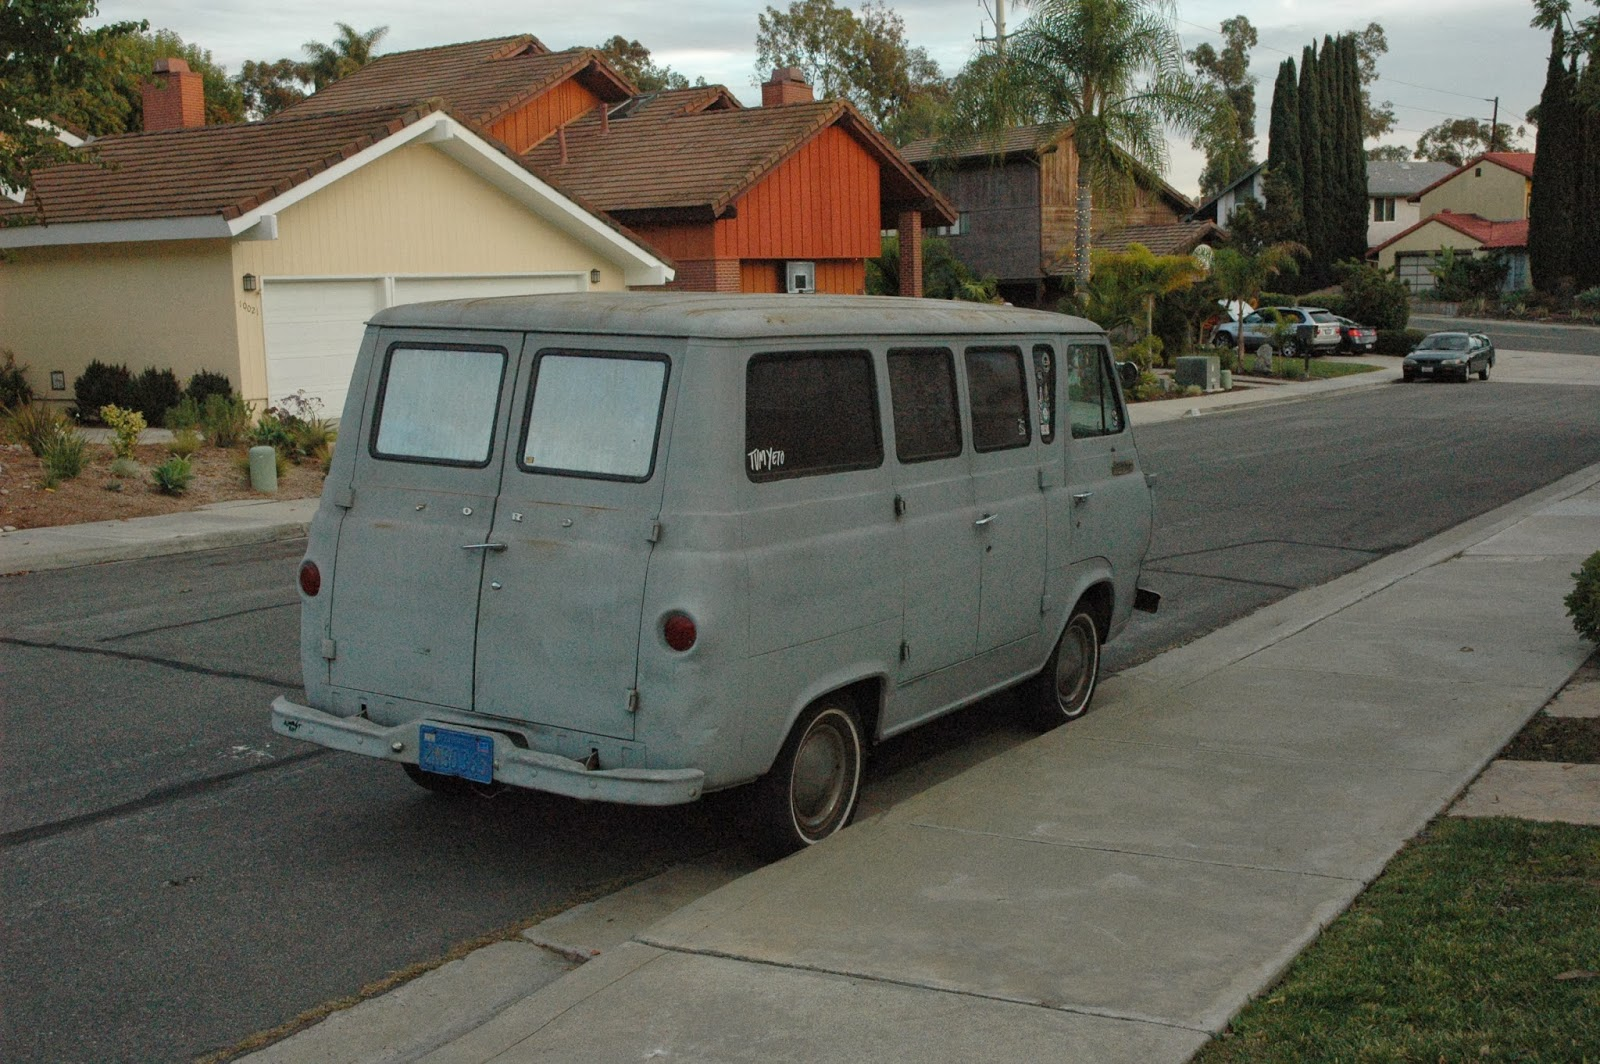 The Knife Absinthe Association Ford Econoline 1964 Van This Is A Built In February Loraine Ohio